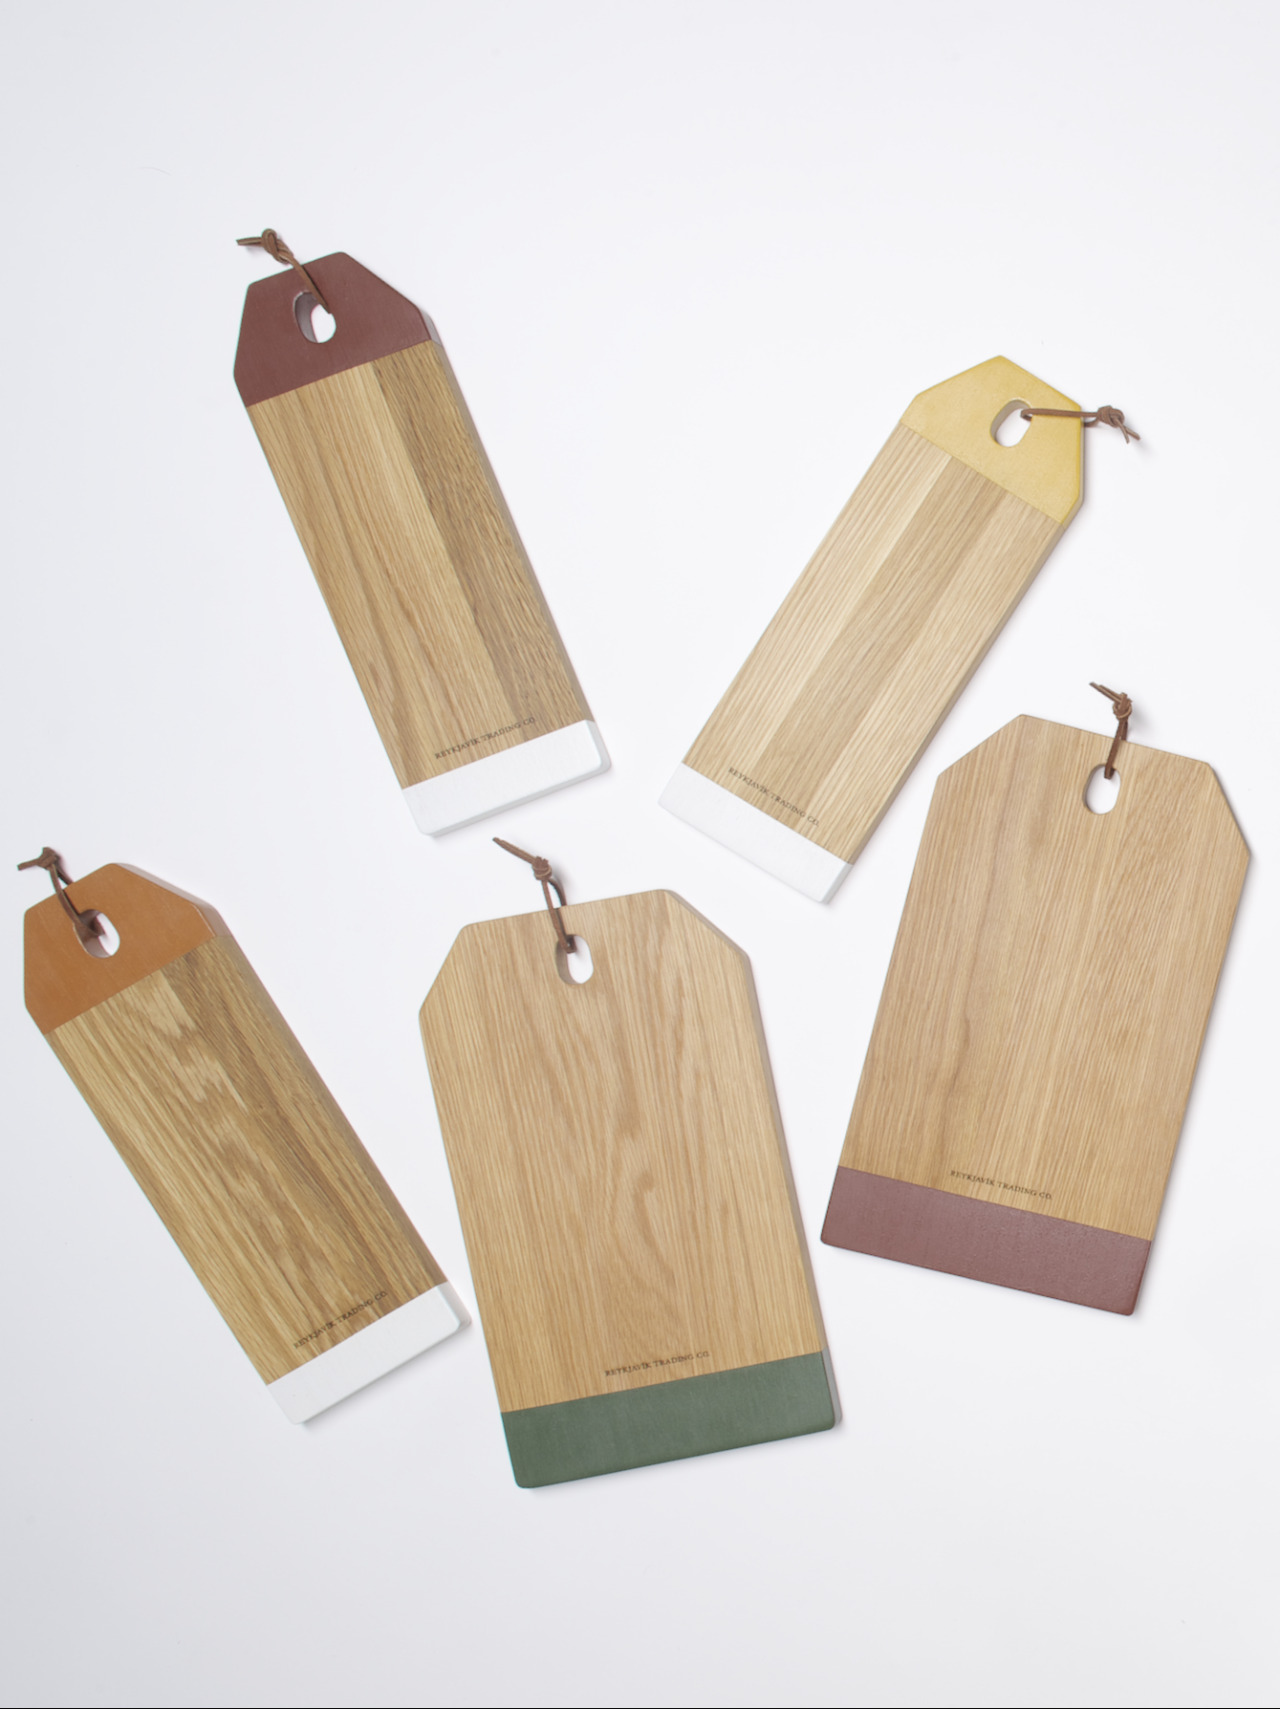 We introduced this week new colors to our Colorblocked Oak Serving Boards.   Kentucky-grown oak board handcrafted & painted in Iceland with natural food-safe milk paint.